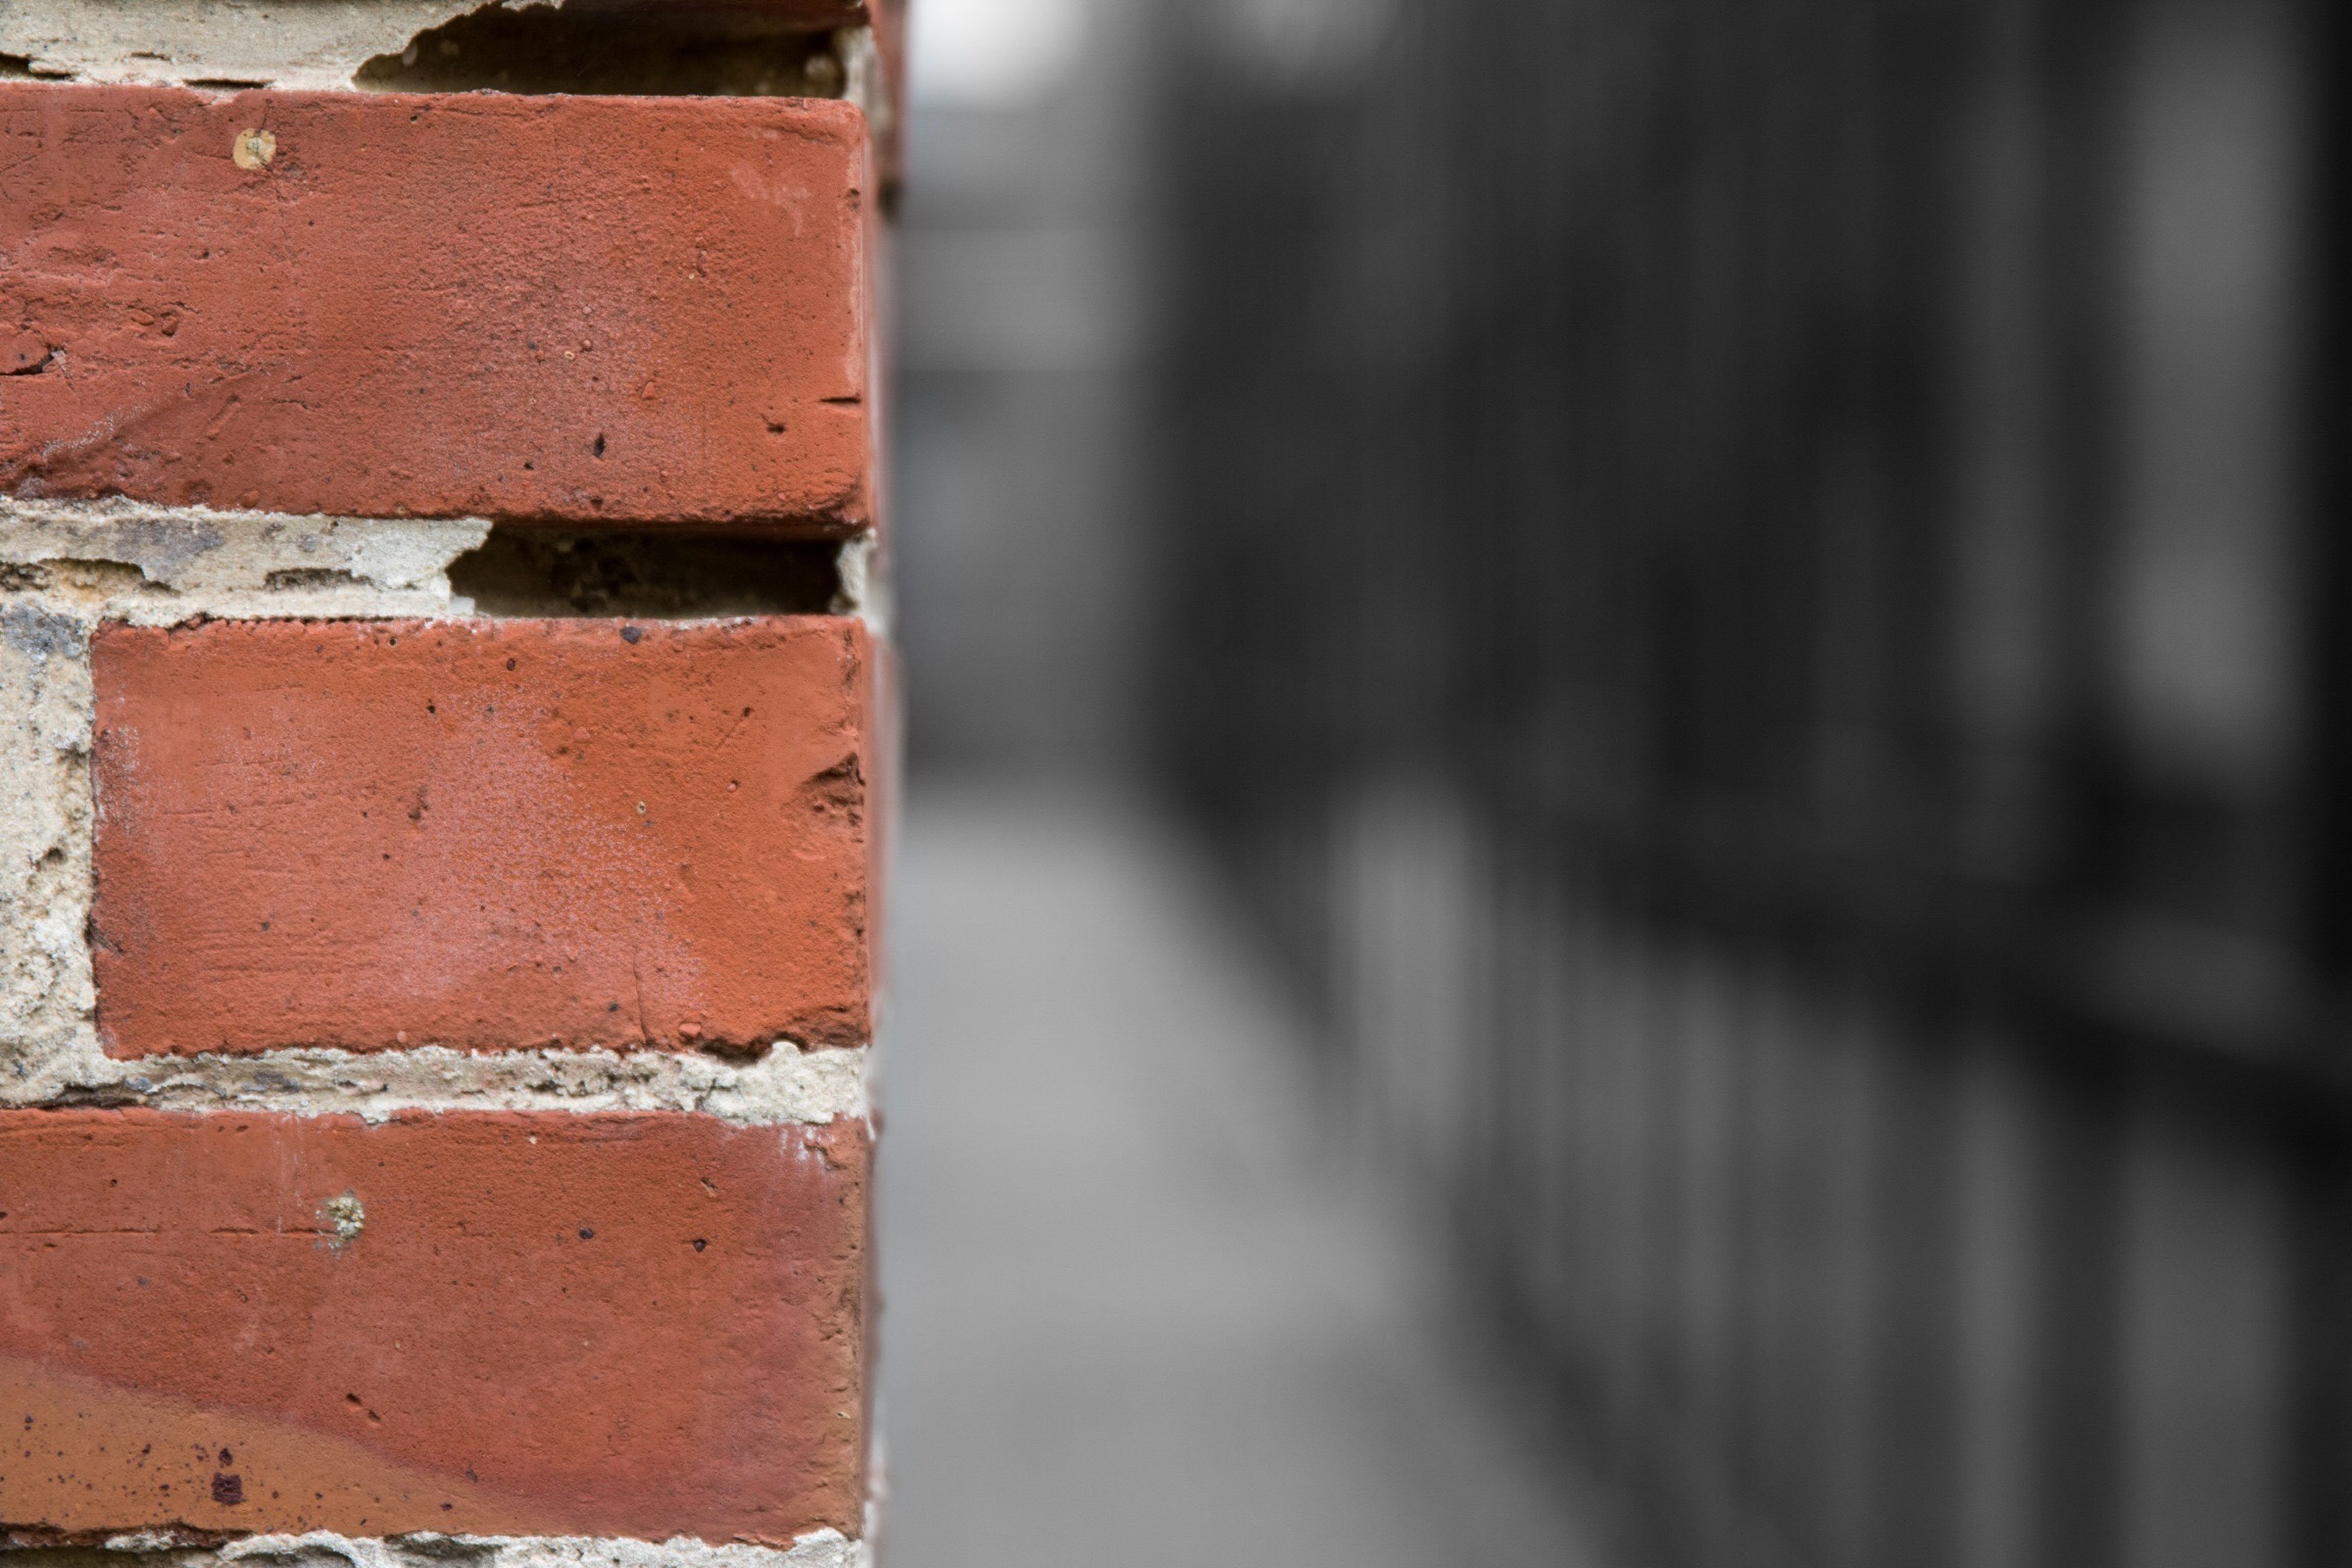 focus on foreground, architecture, built structure, wall - building feature, close-up, selective focus, brick, day, red, no people, history